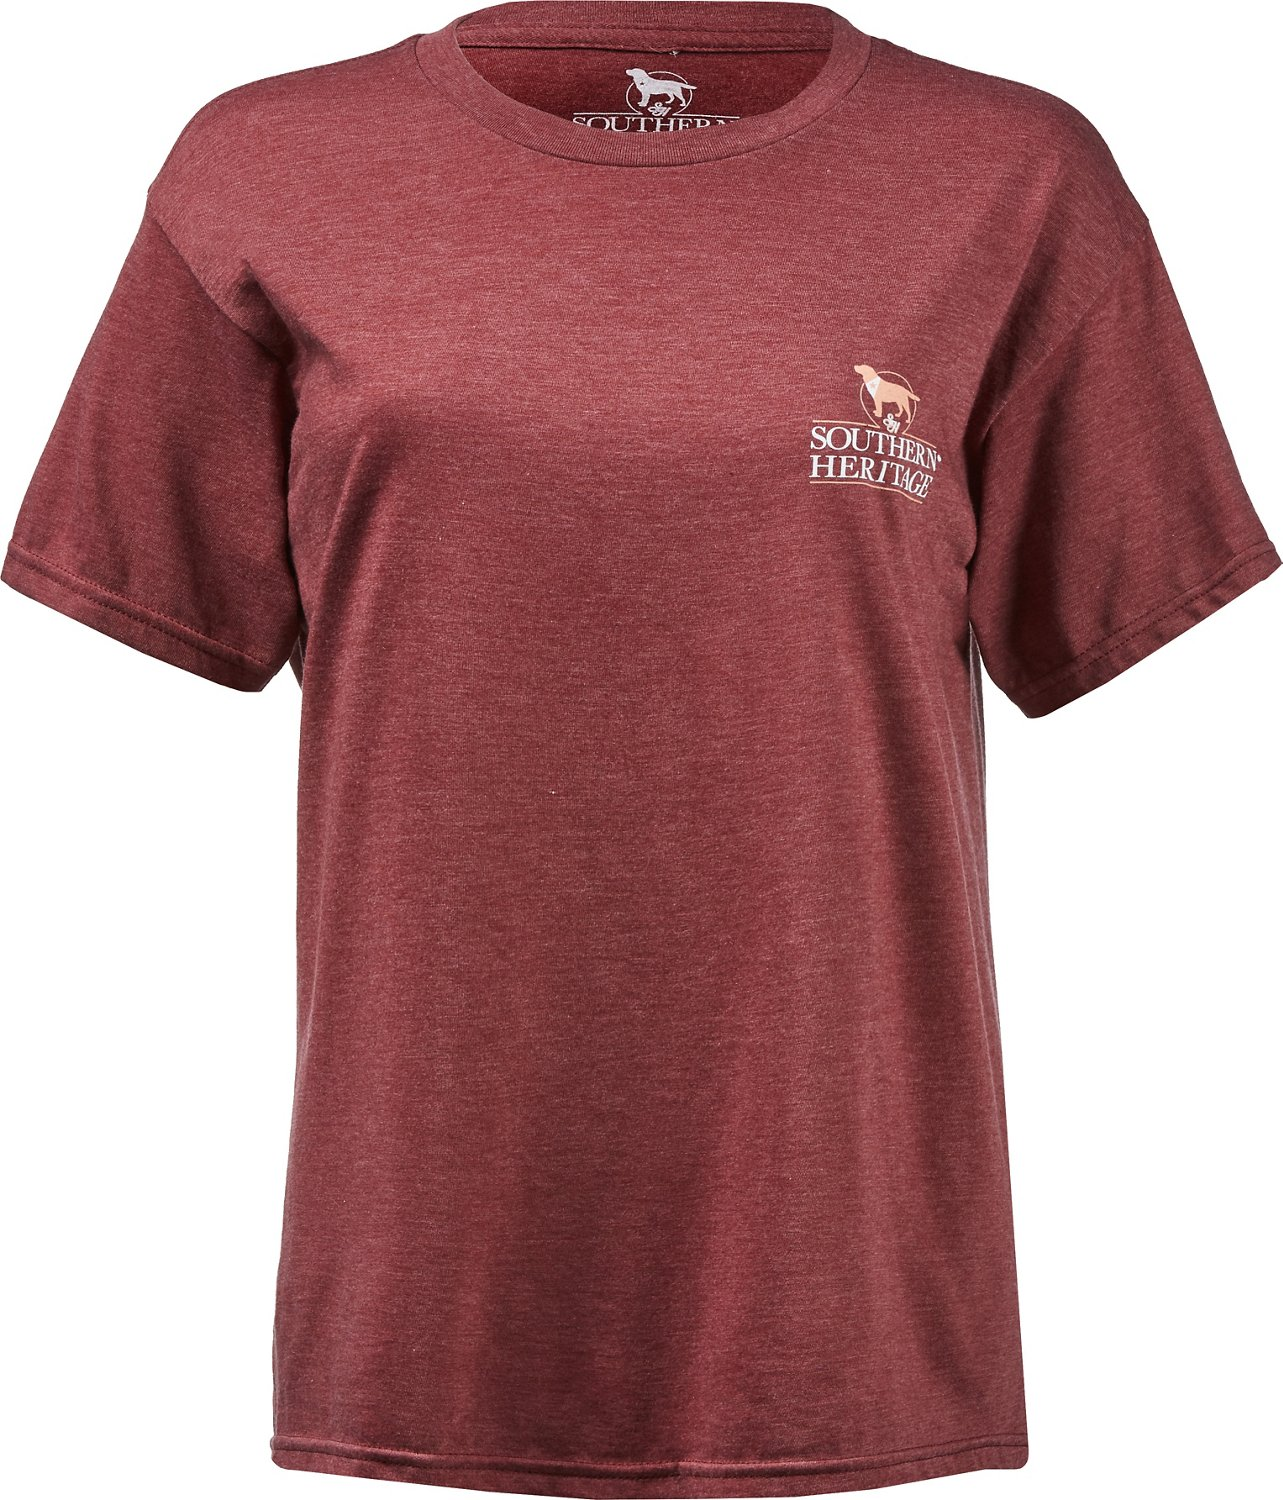 Southern Heritage Women's Pumpkin Spice T-shirt - view number 1